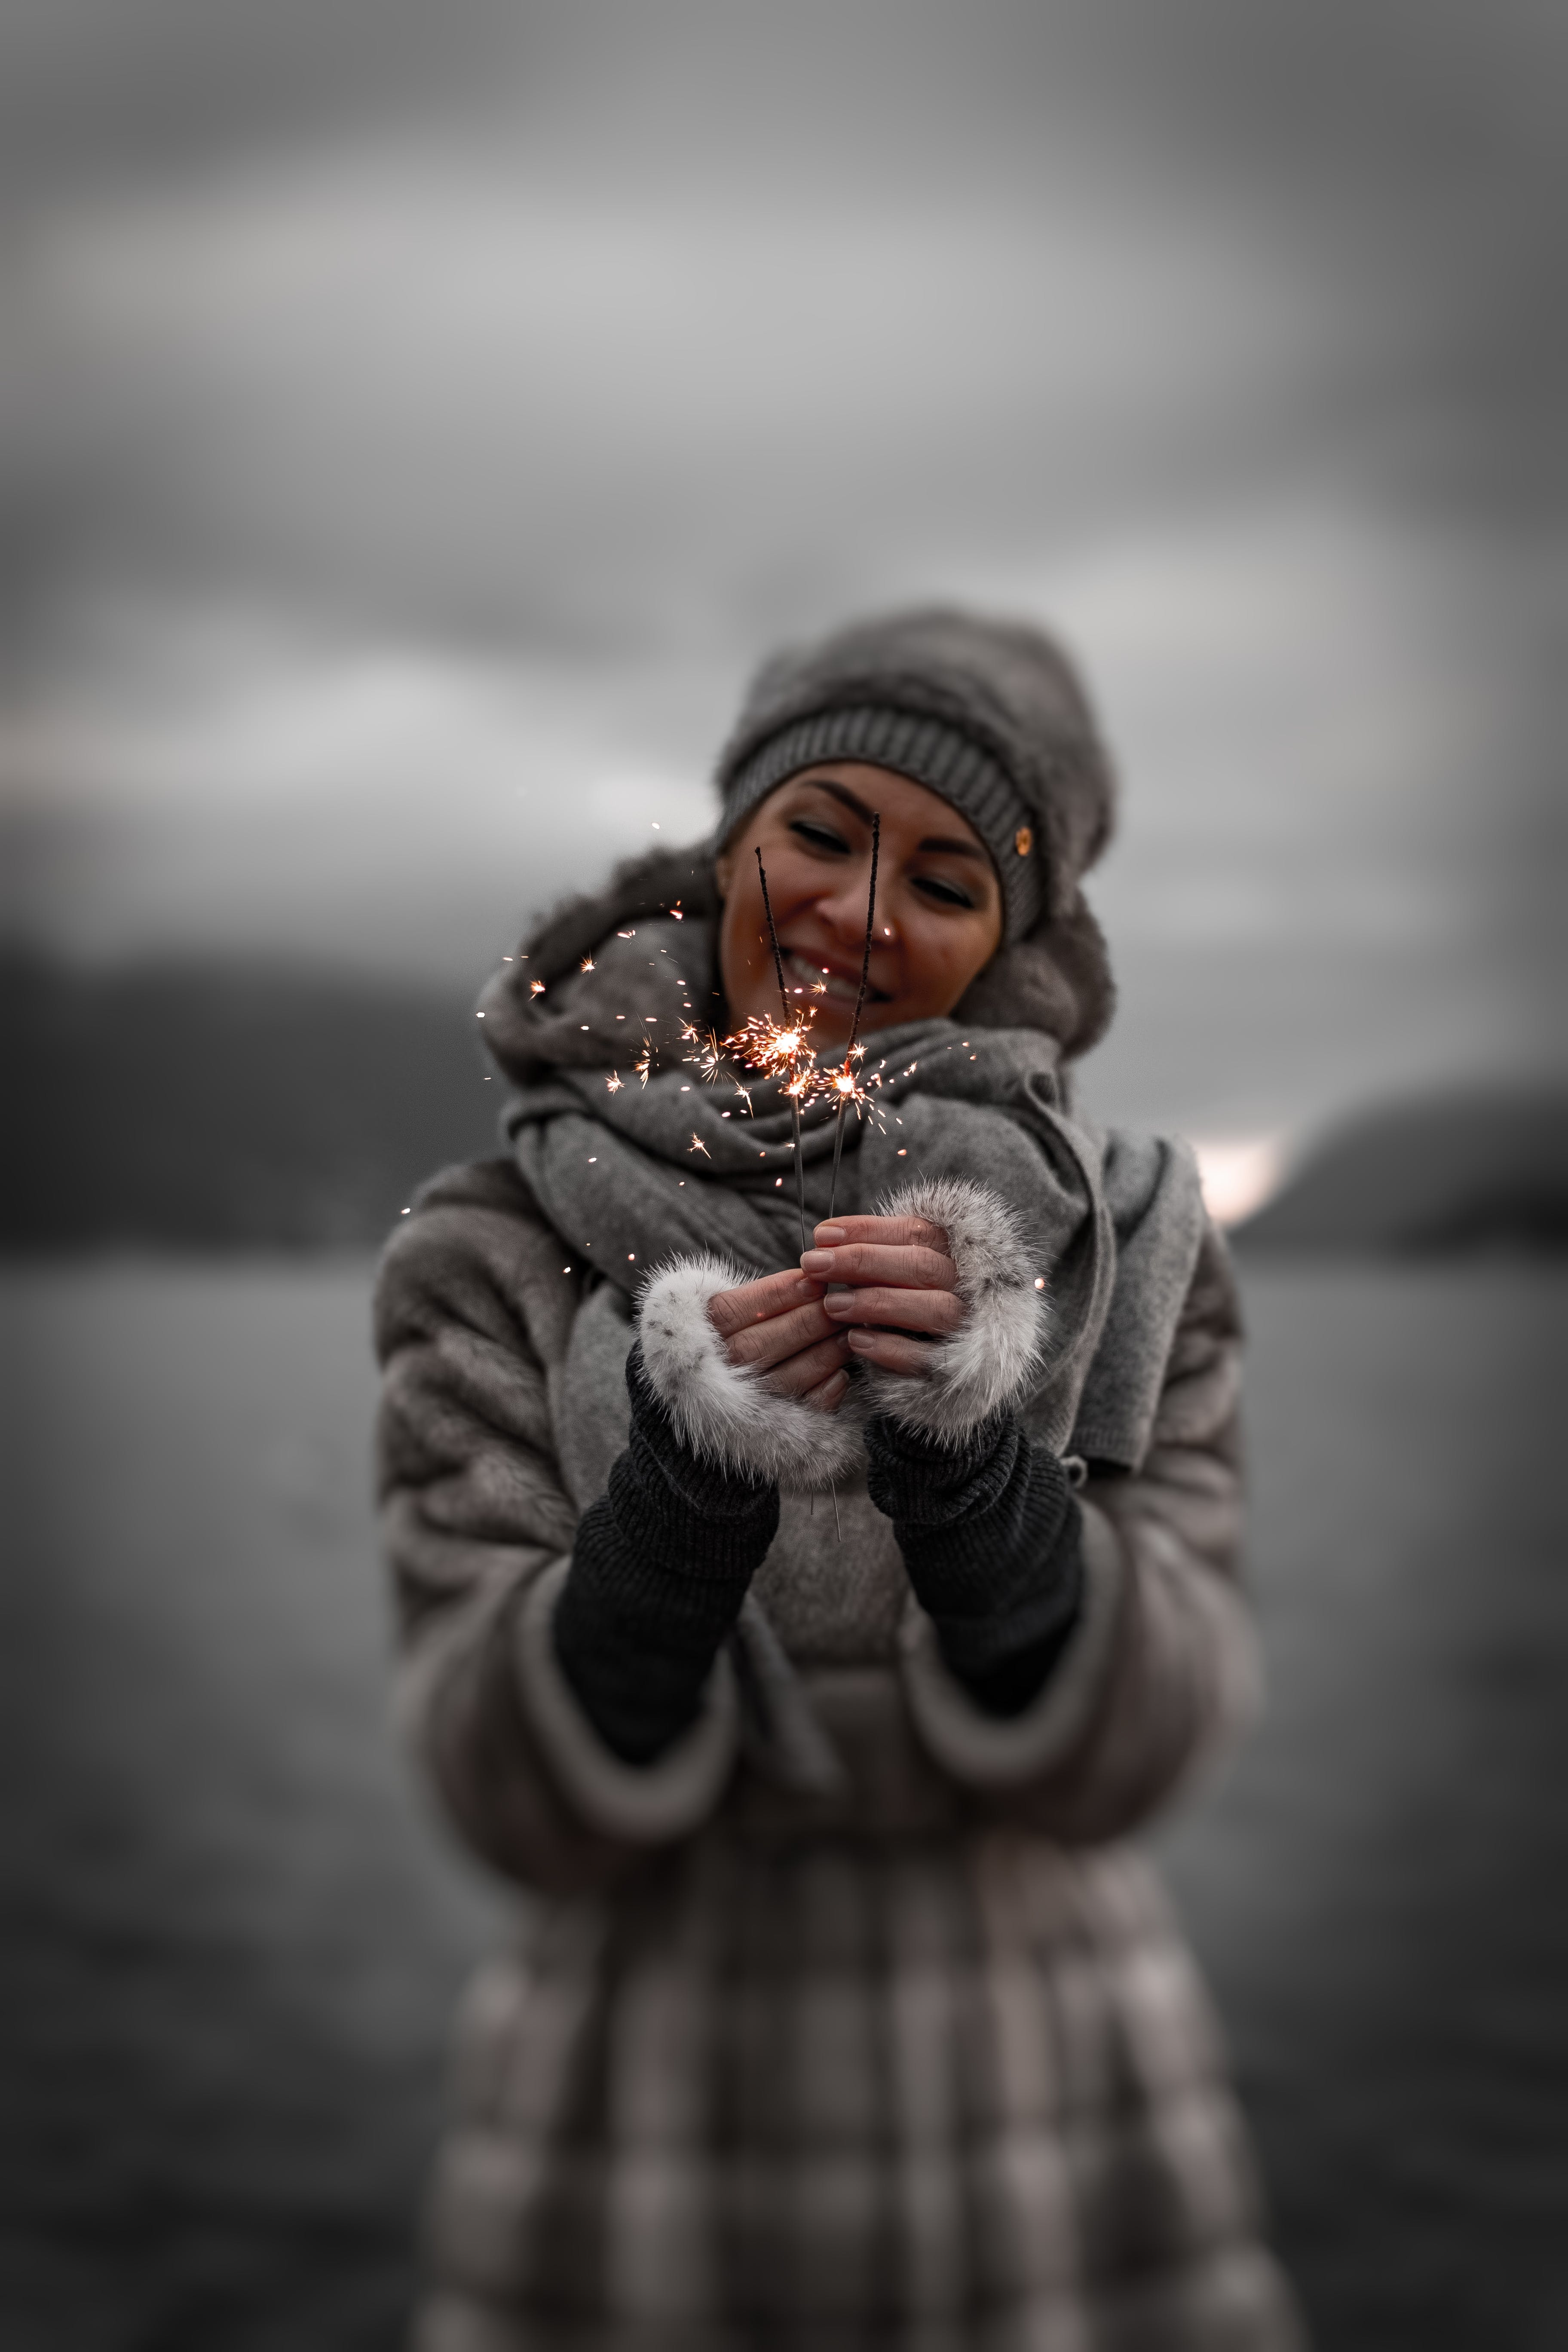 Photo of Smiling Woman Holding Lit Sparklers